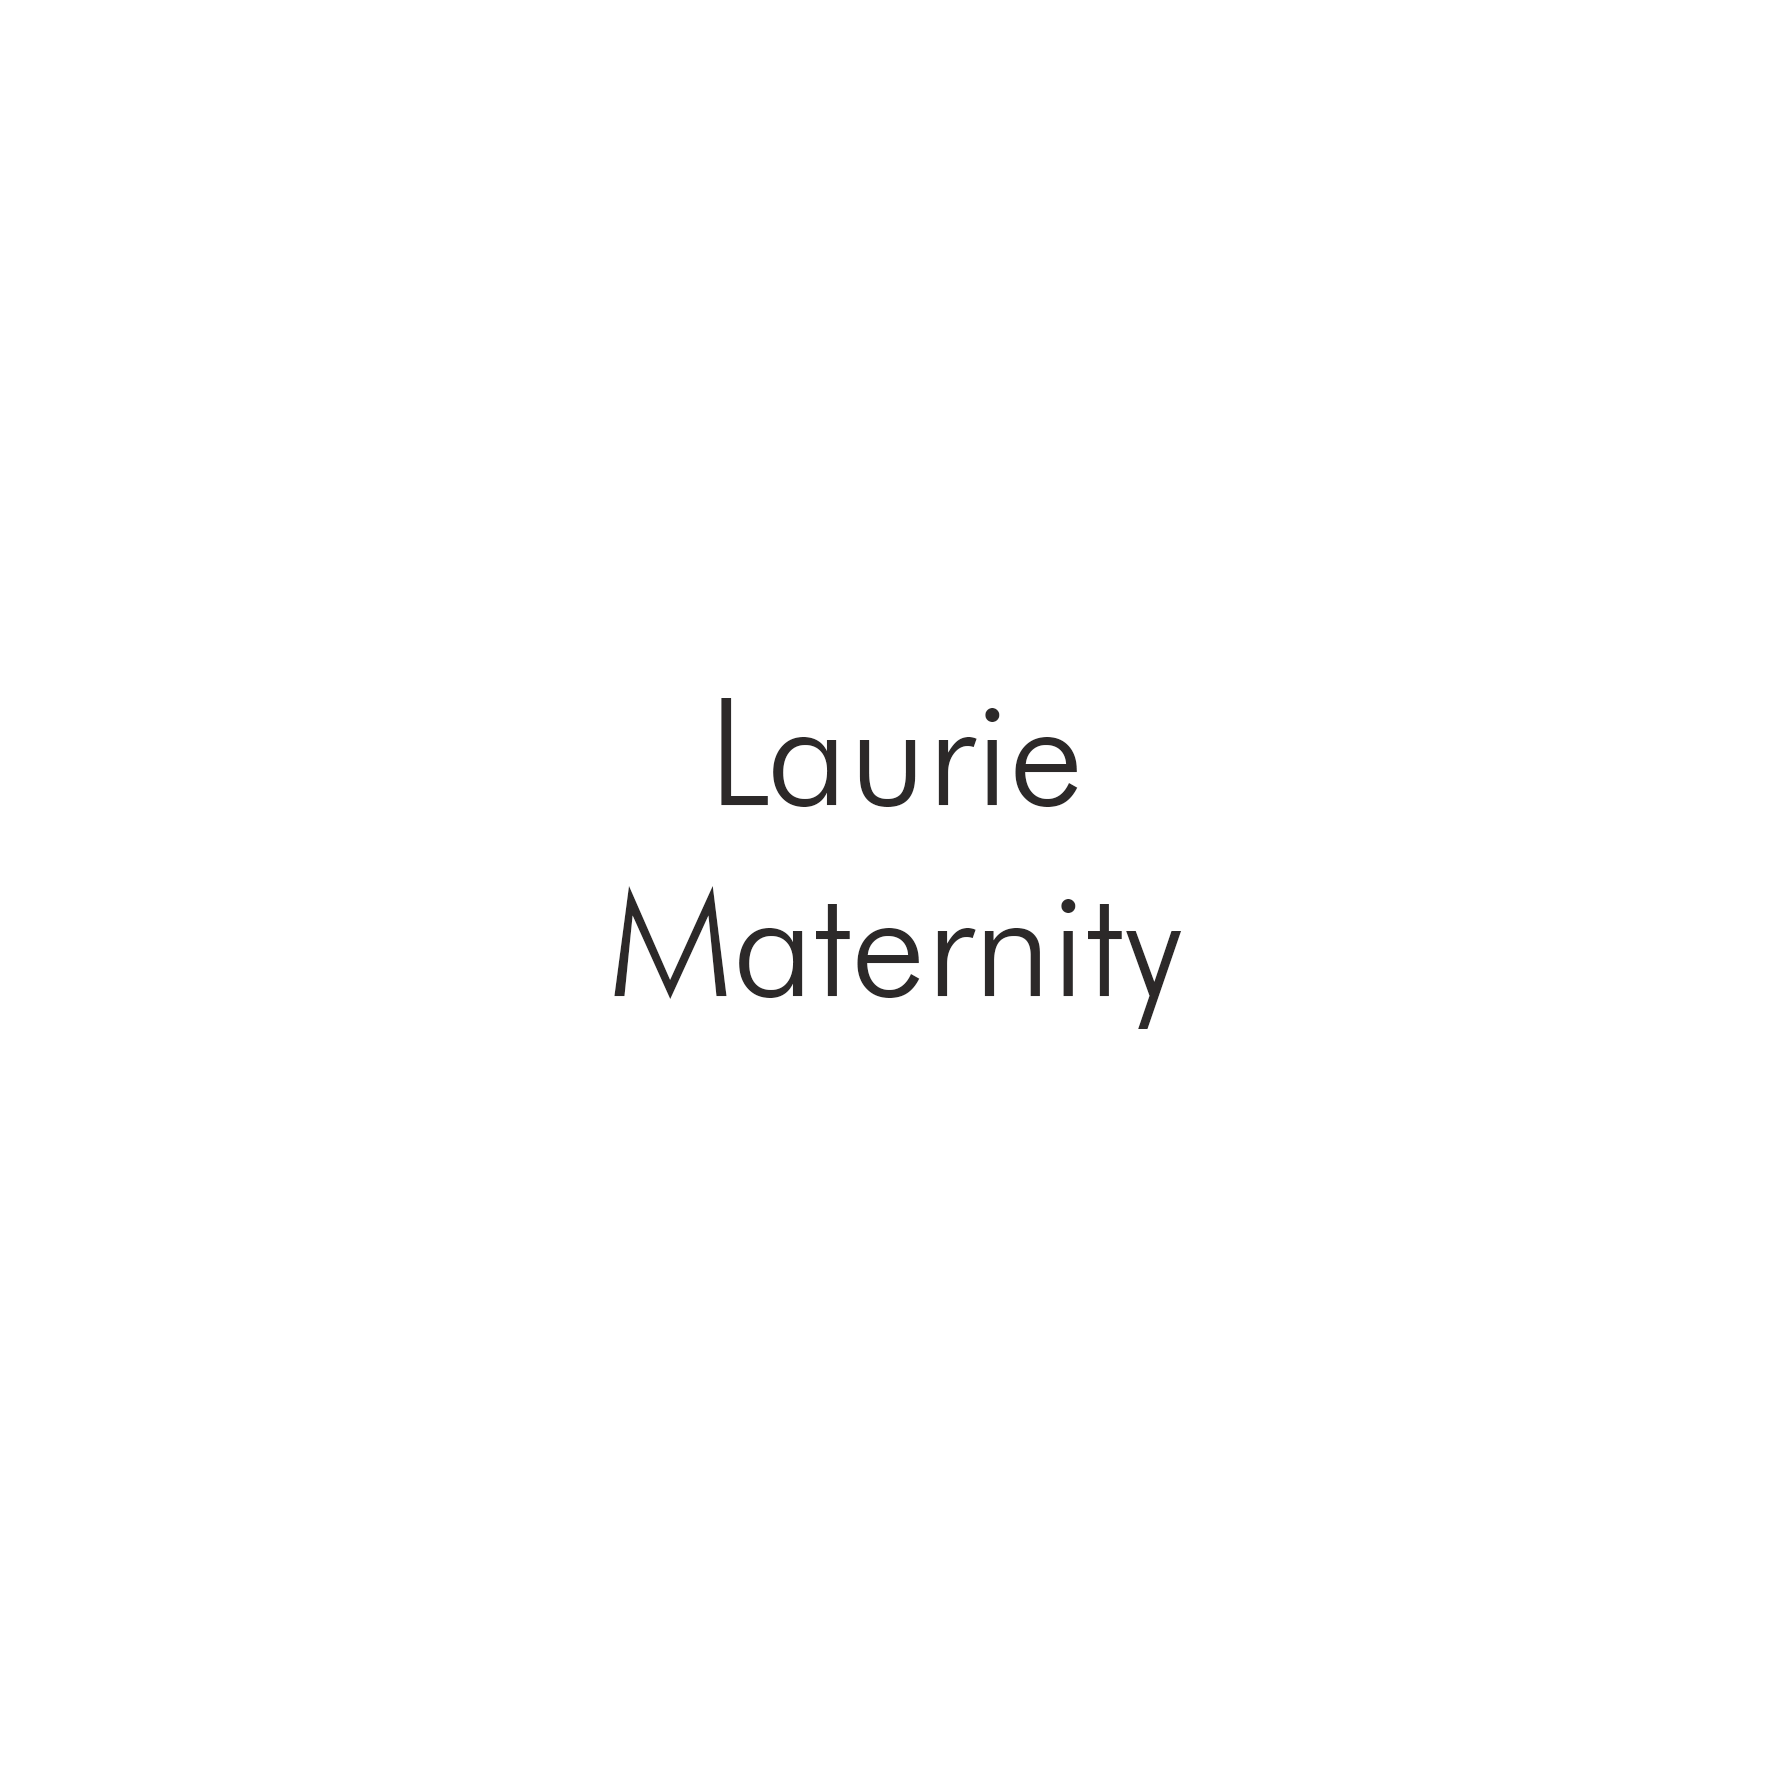 Laurie Maternity.png